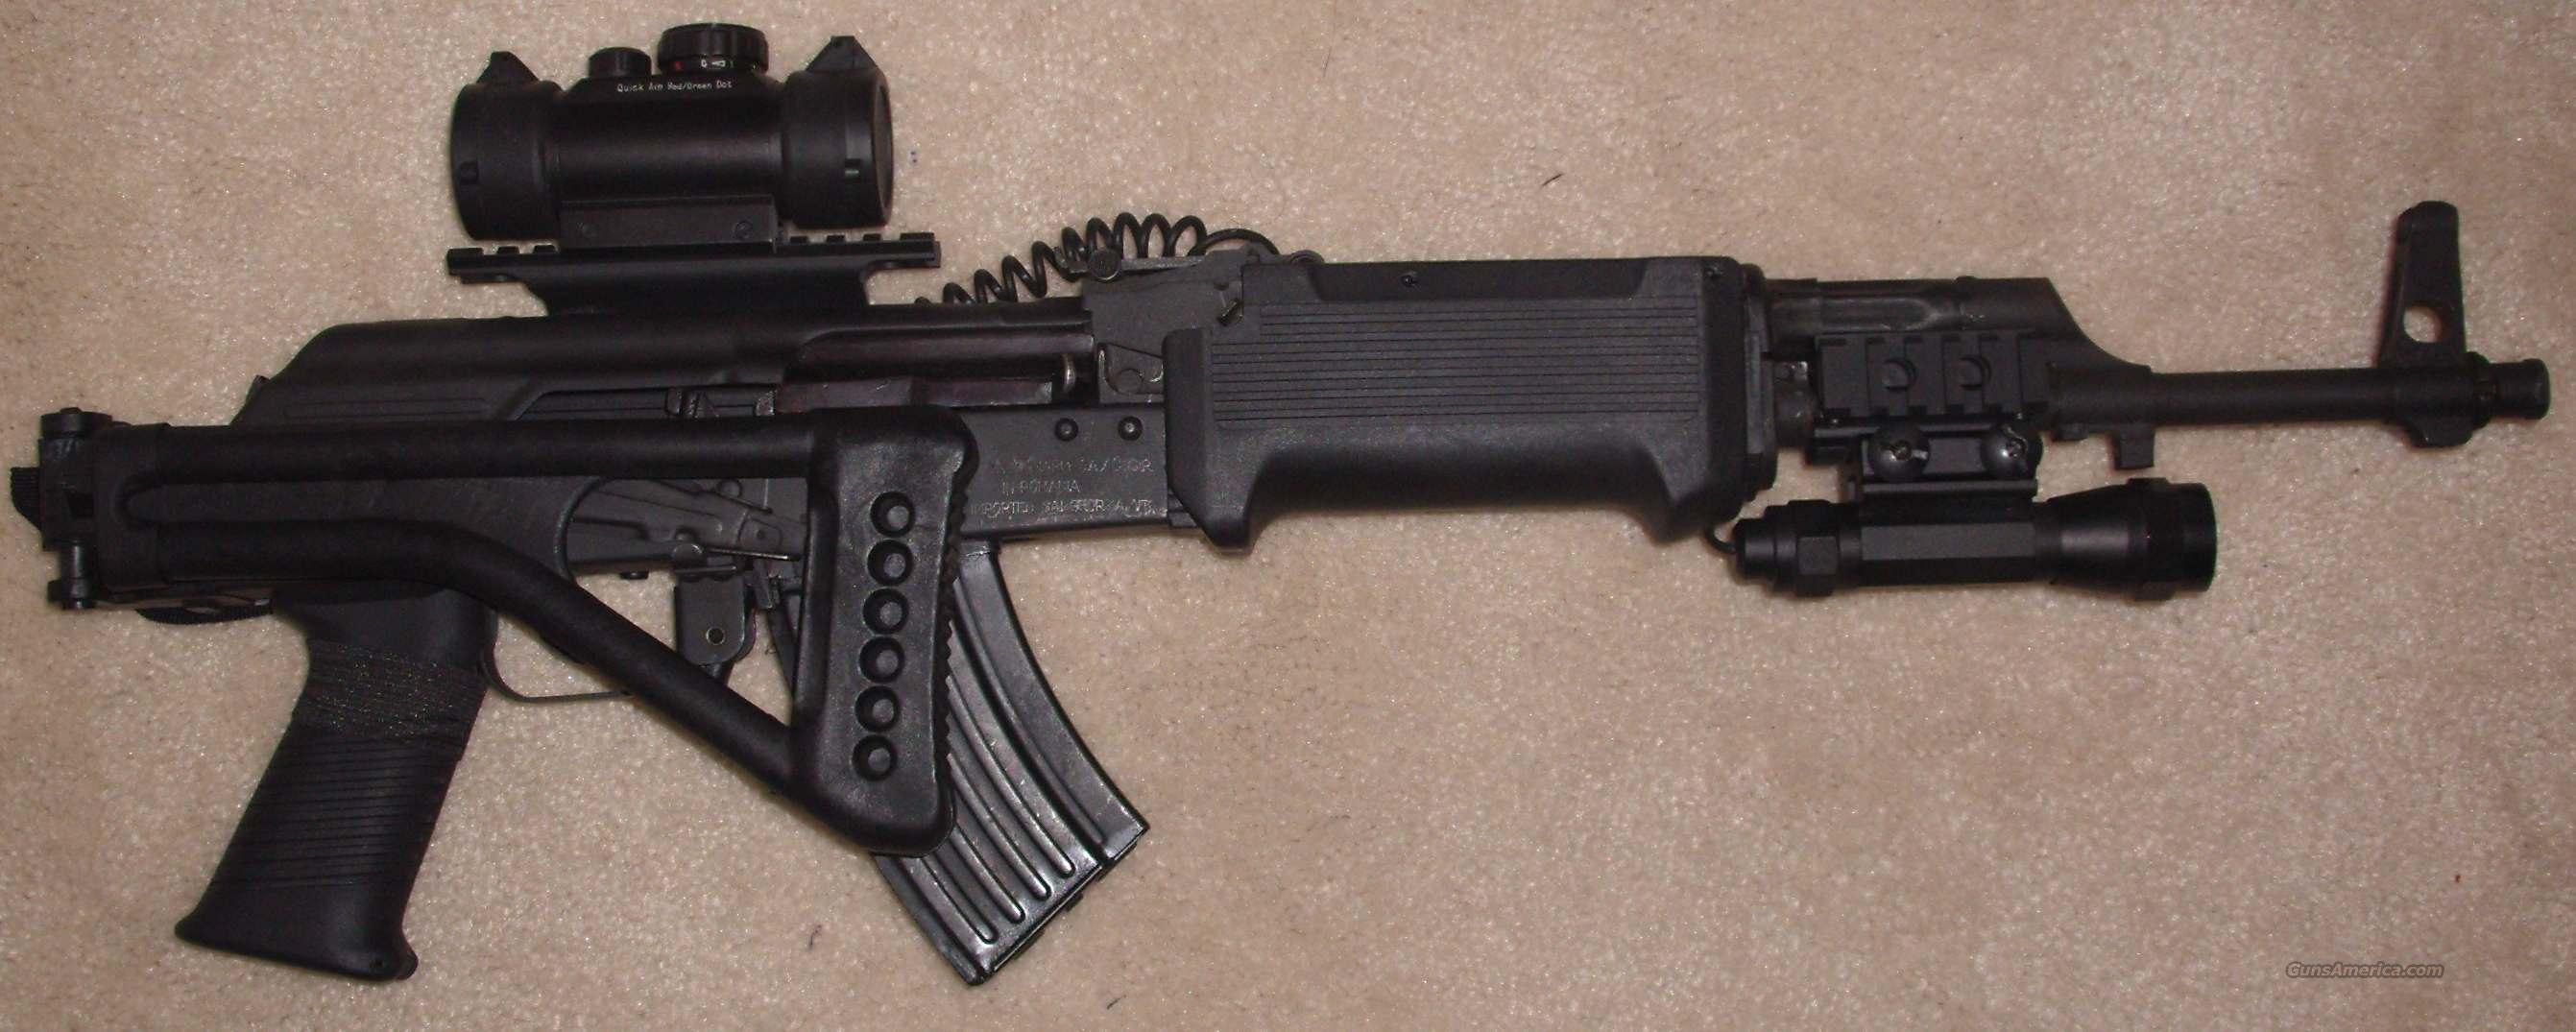 AK47 w/ tactical stock, reticle, laser sight, and tac light